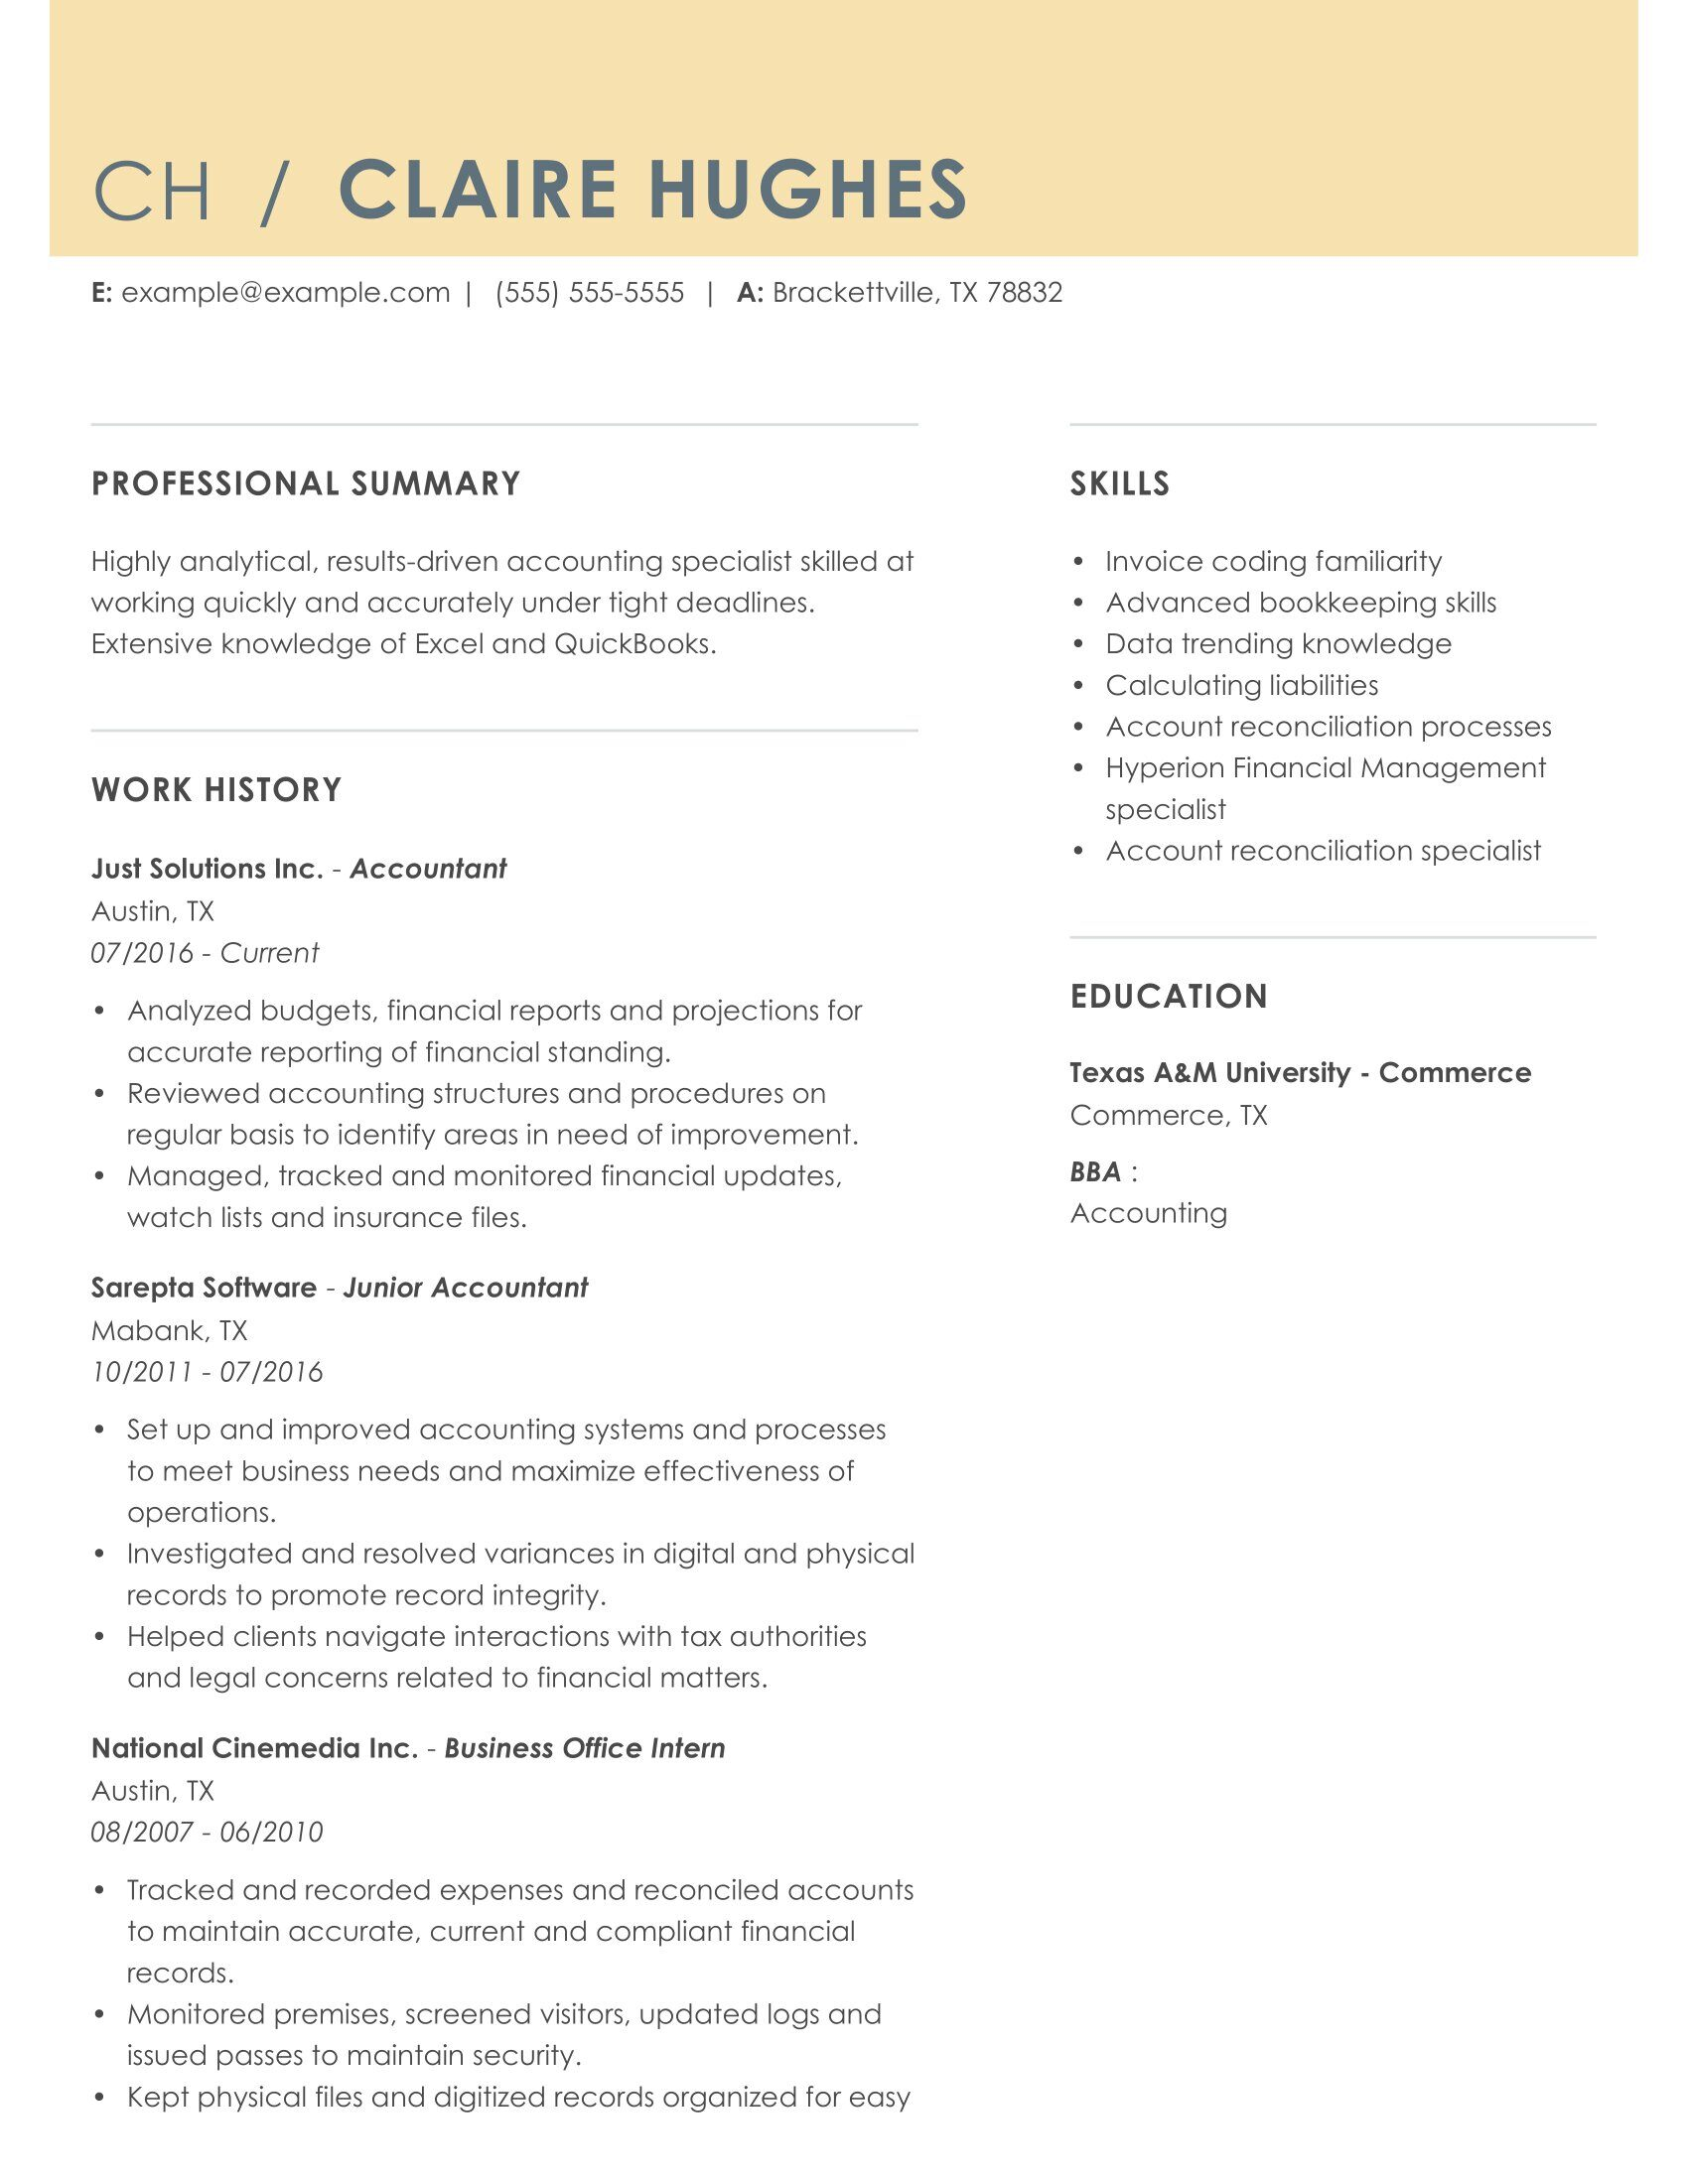 top accountant resume example in myperfectresume accounting skills someexp combo featured Resume Accounting Resume Skills